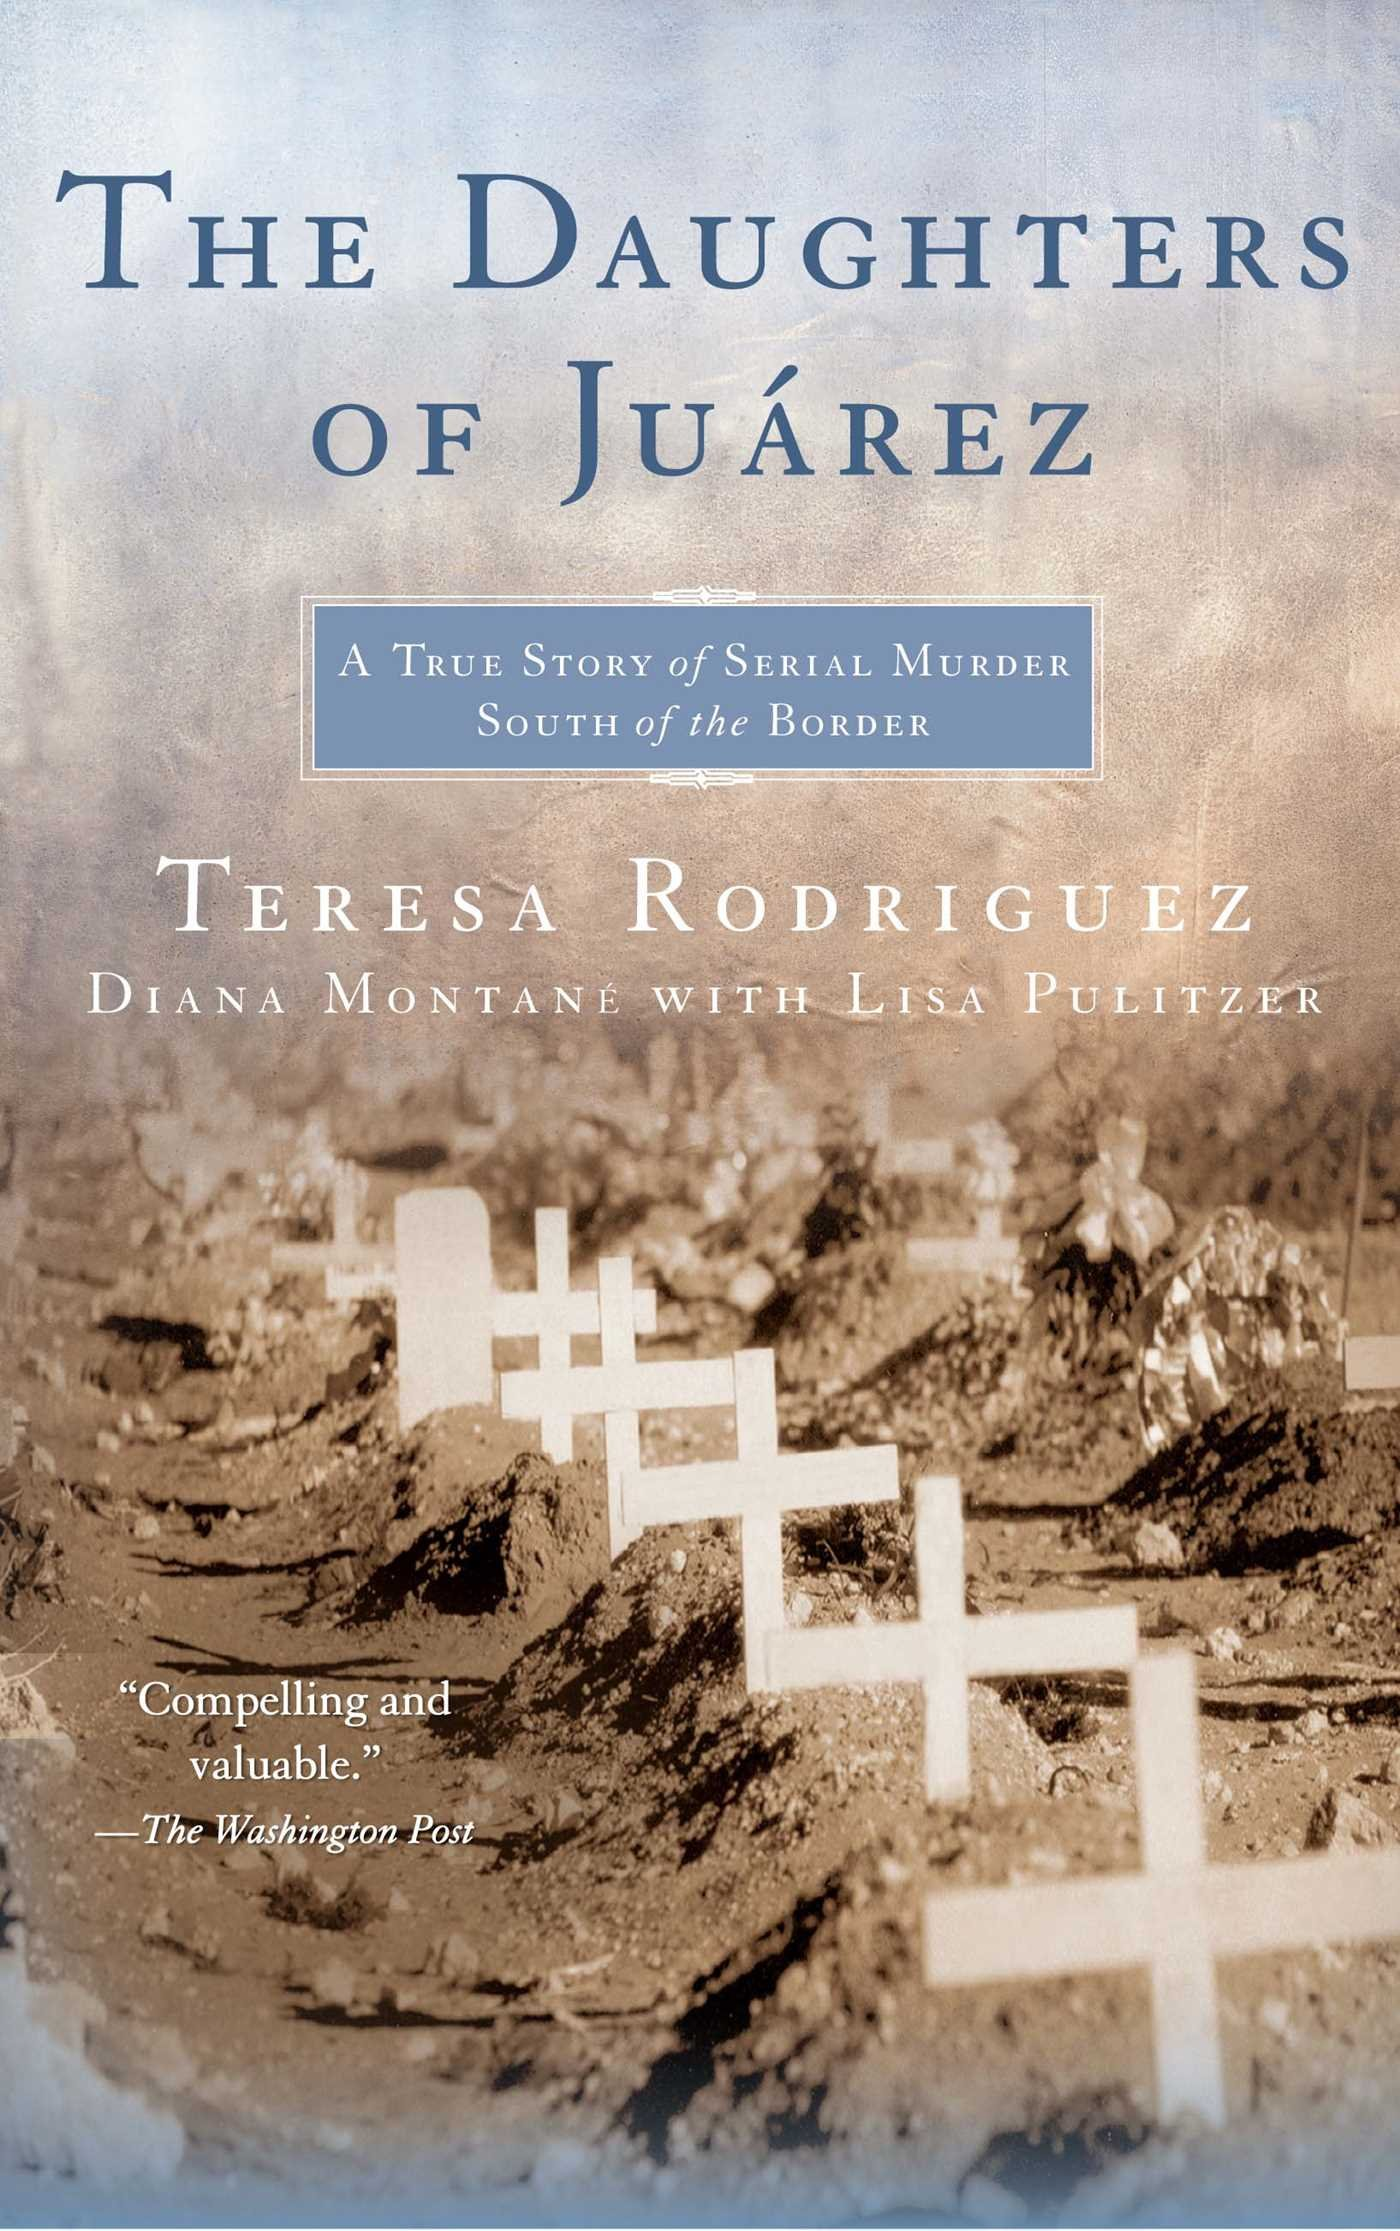 The Daughters of Juarez: A True Story of Serial Murder South of the Border pdf